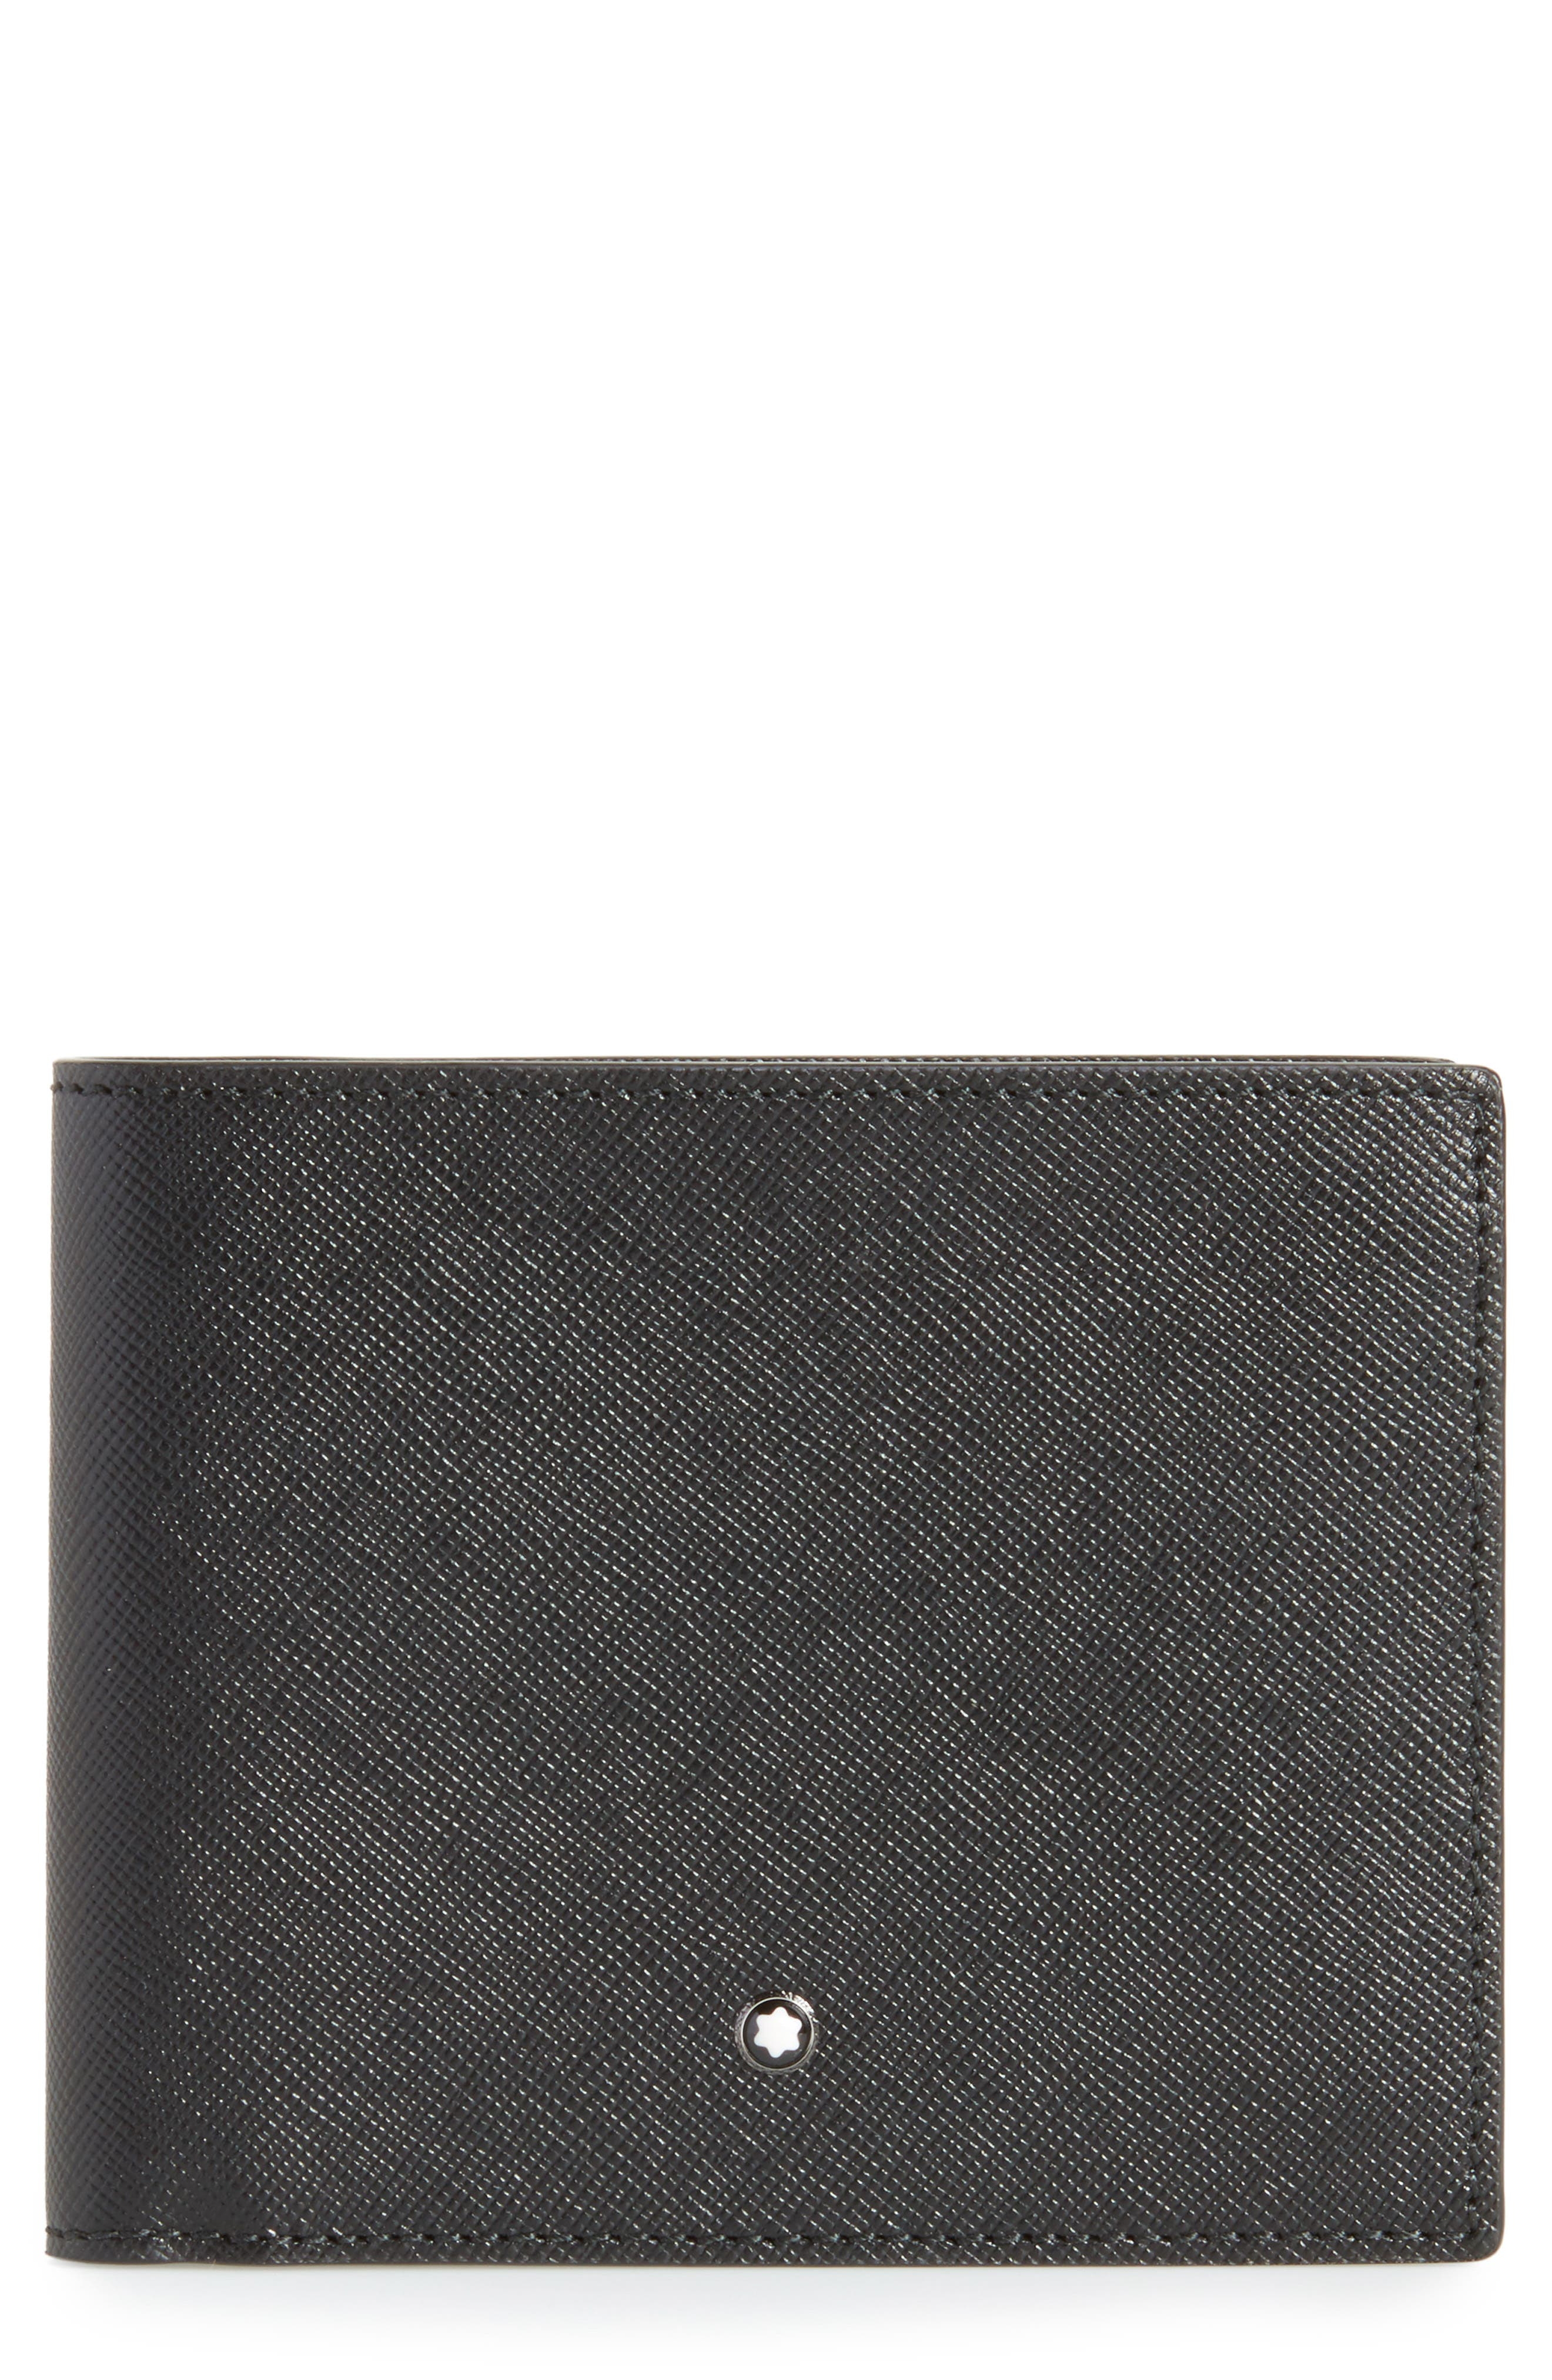 Main Image - Montblanc Sartorial Leather Wallet